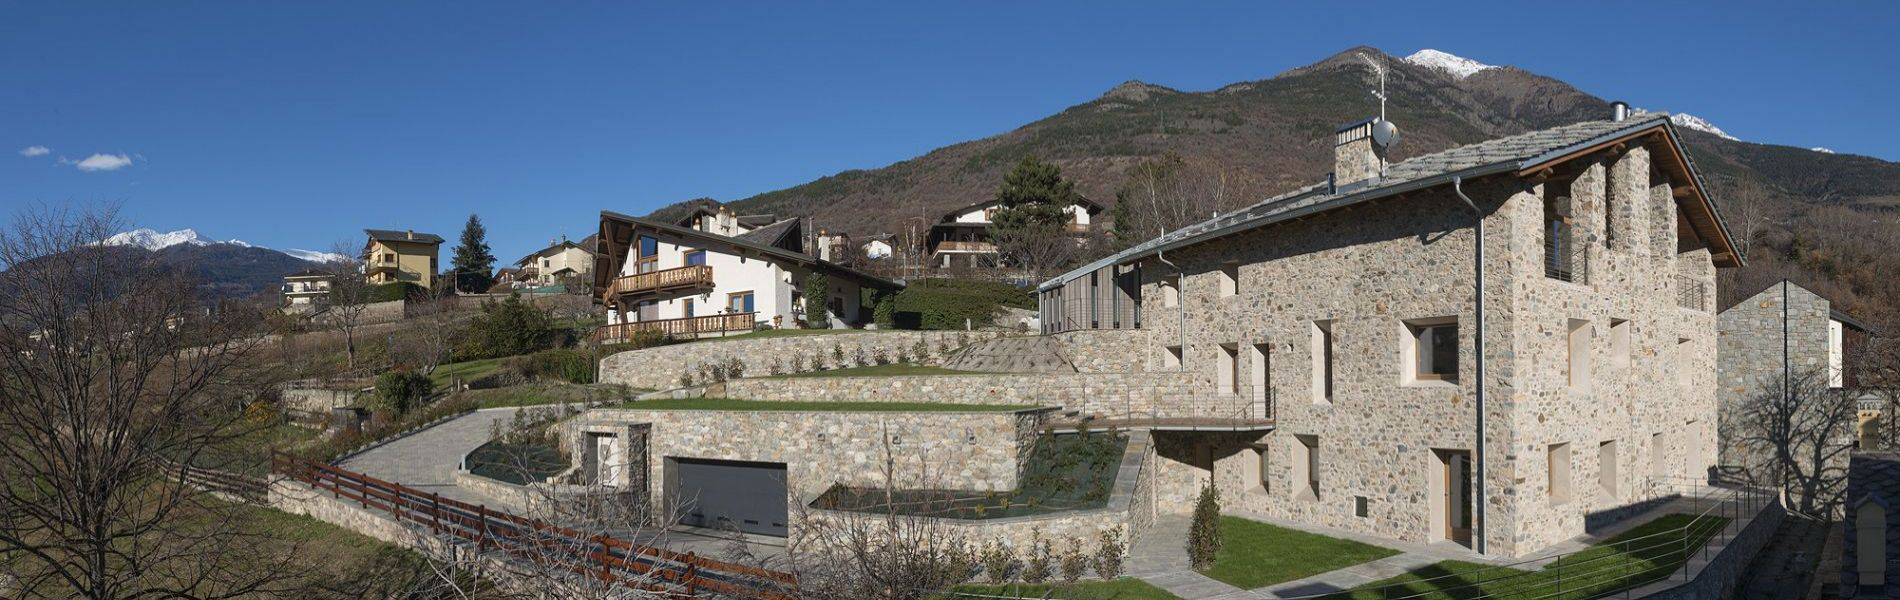 typical aosta valley house